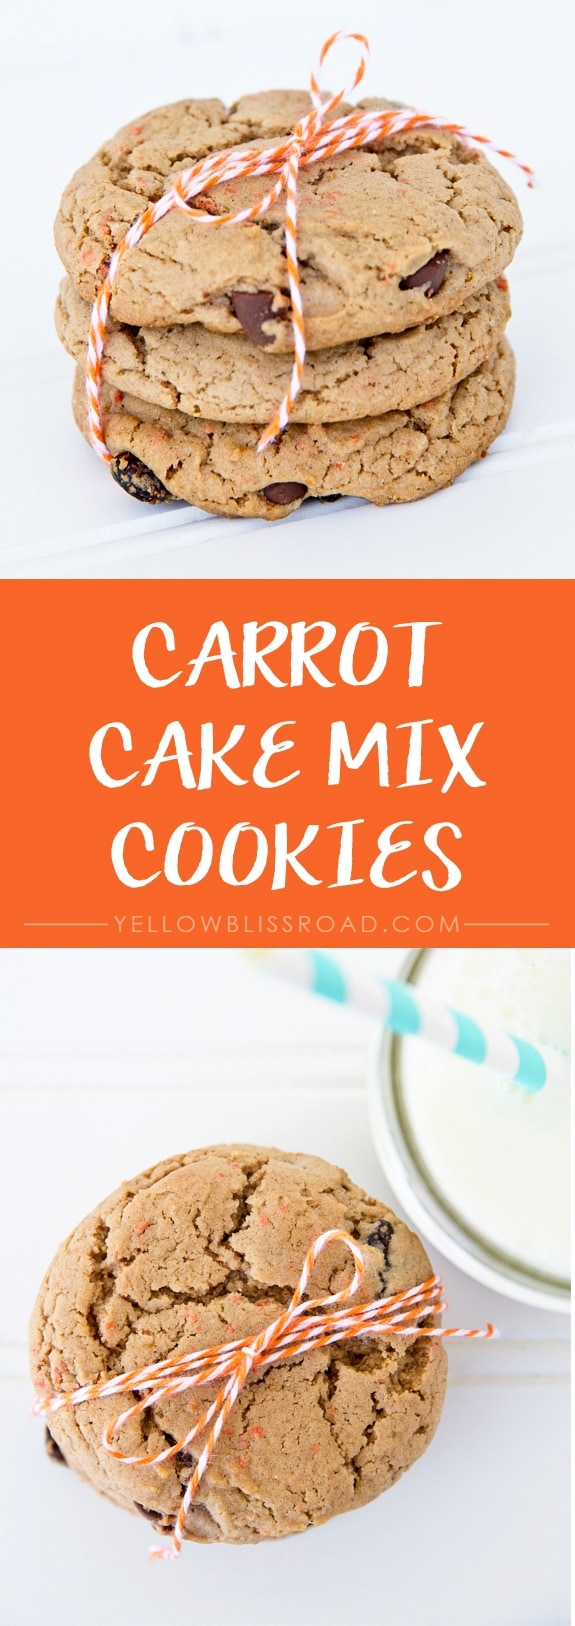 Carrot Cake Mix Cookies - easy to make and perfect for Spring!